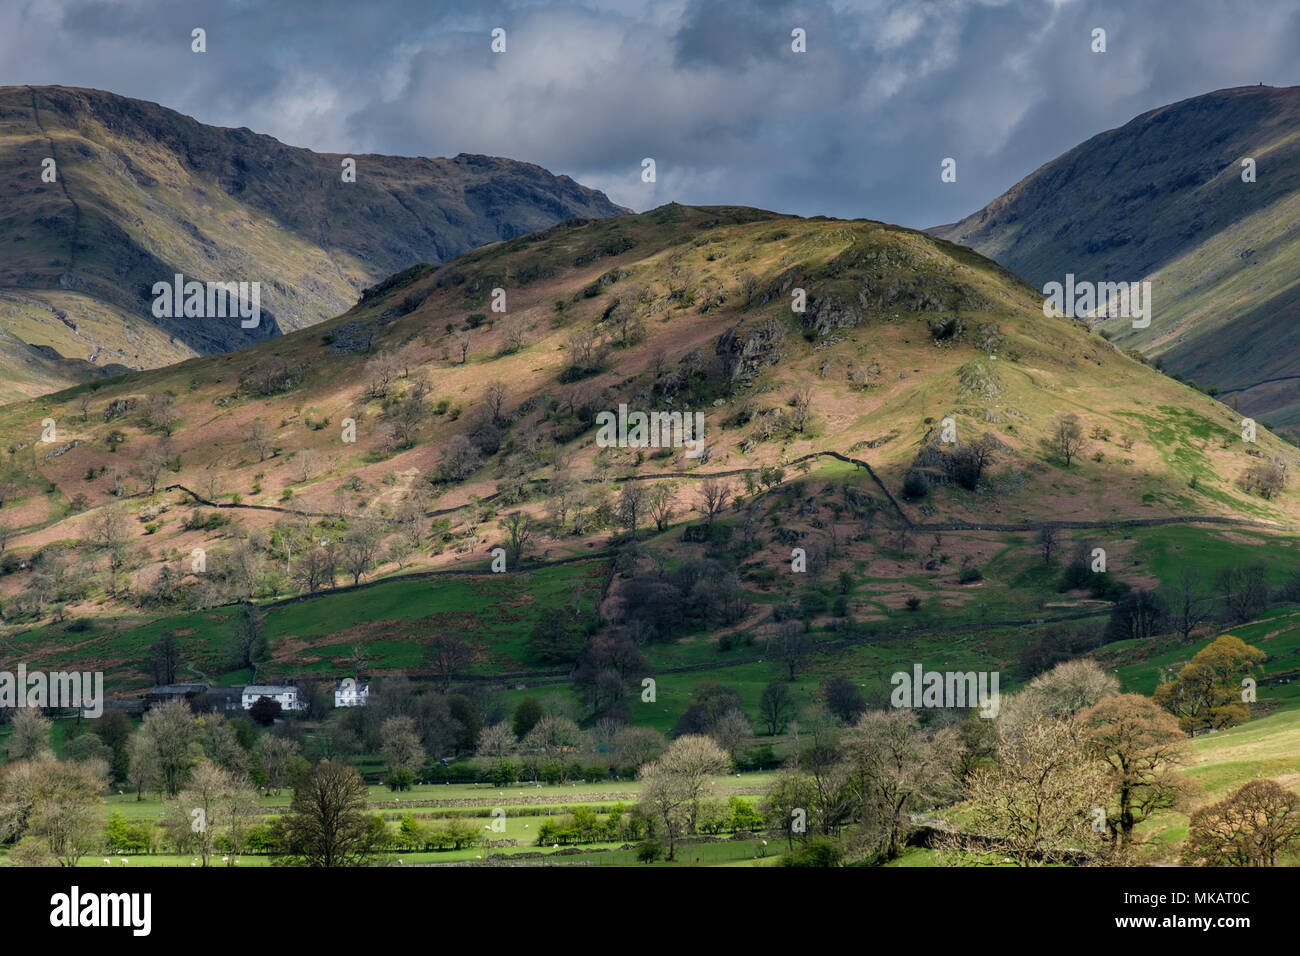 The Tongue, in Troutbeck Valley, near Windermere, Lake District, Cumbria - Stock Image